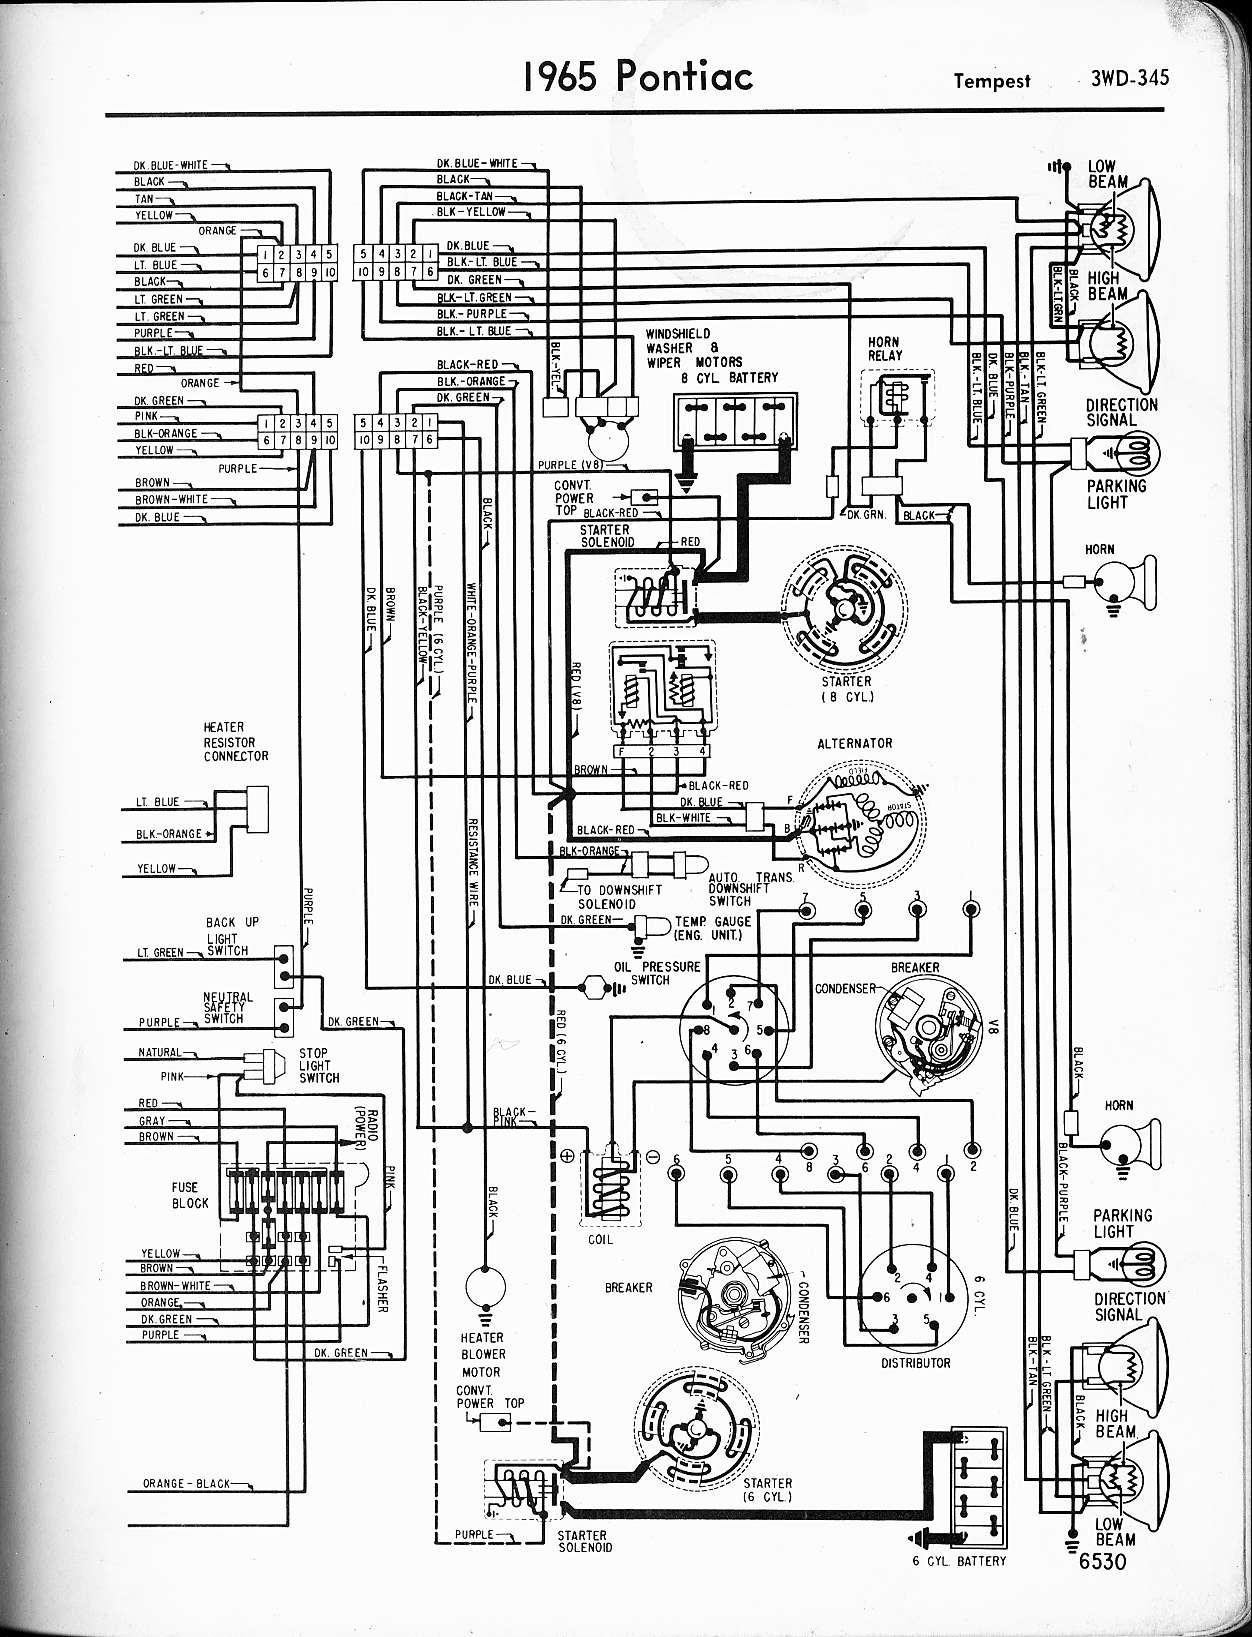 1960 dodge wiring diagram pontiac wiring 1957-1965